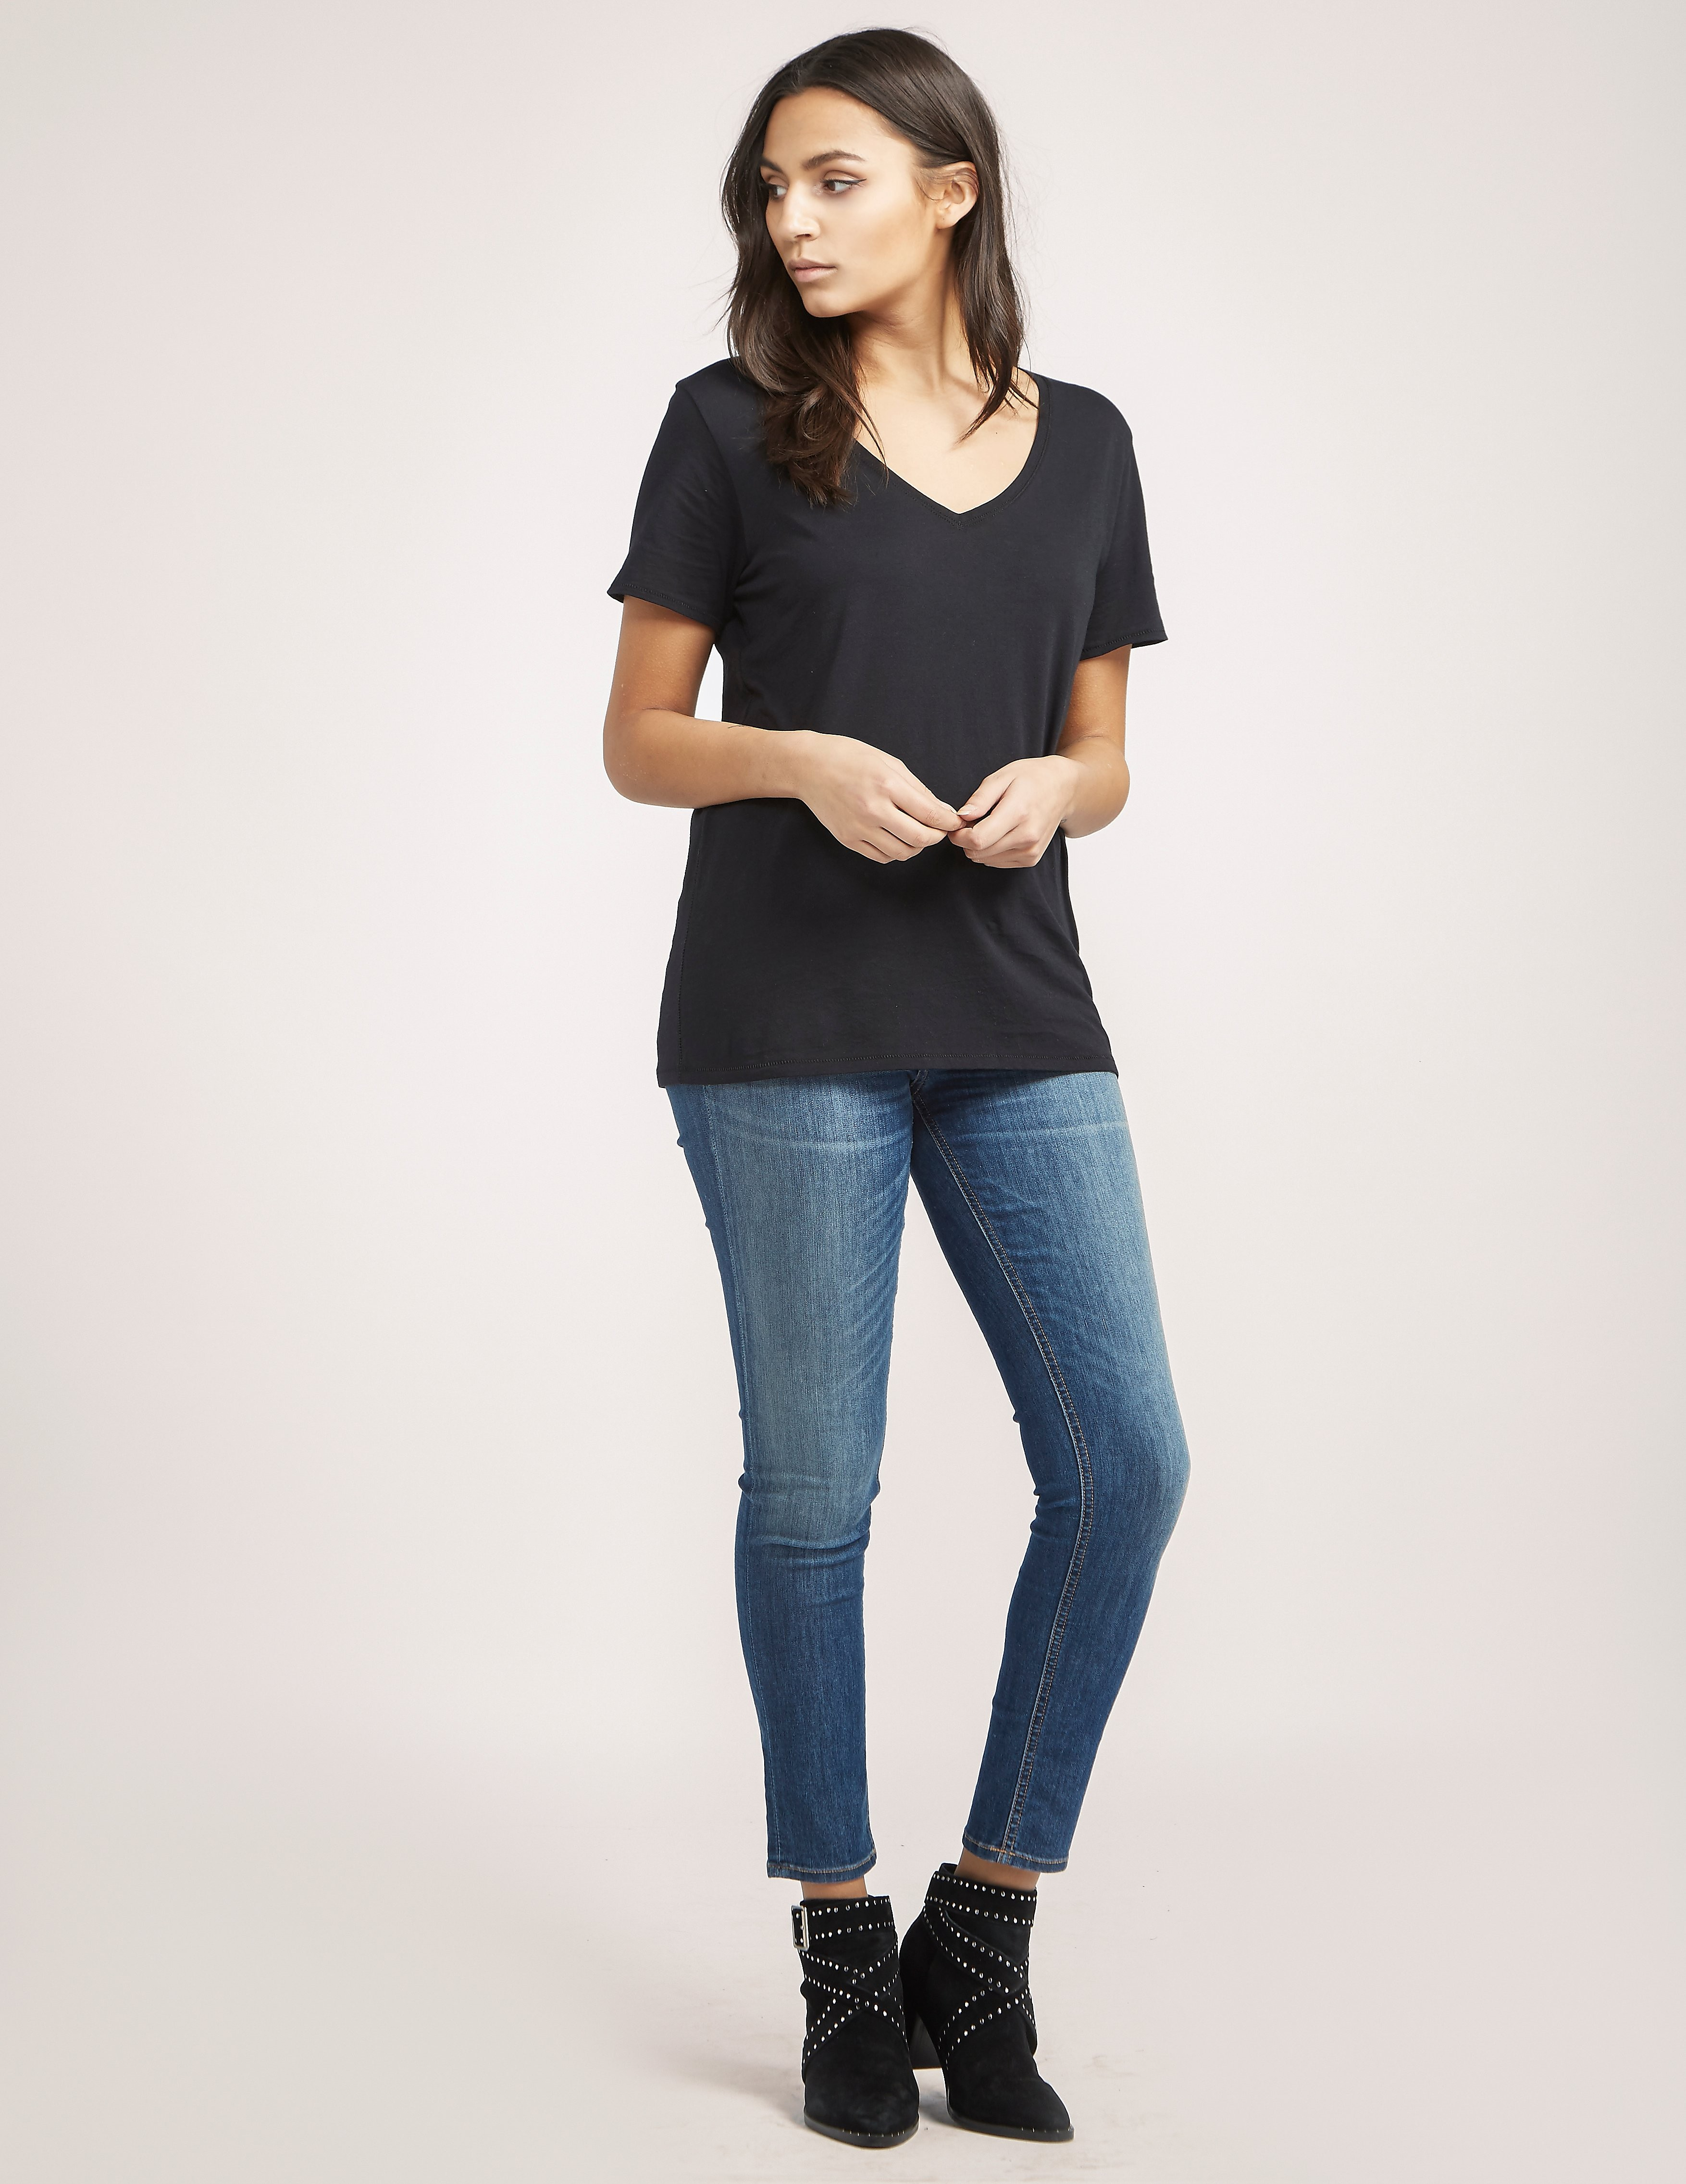 Rag & Bone V-Neck Short Sleeve T-Shirt